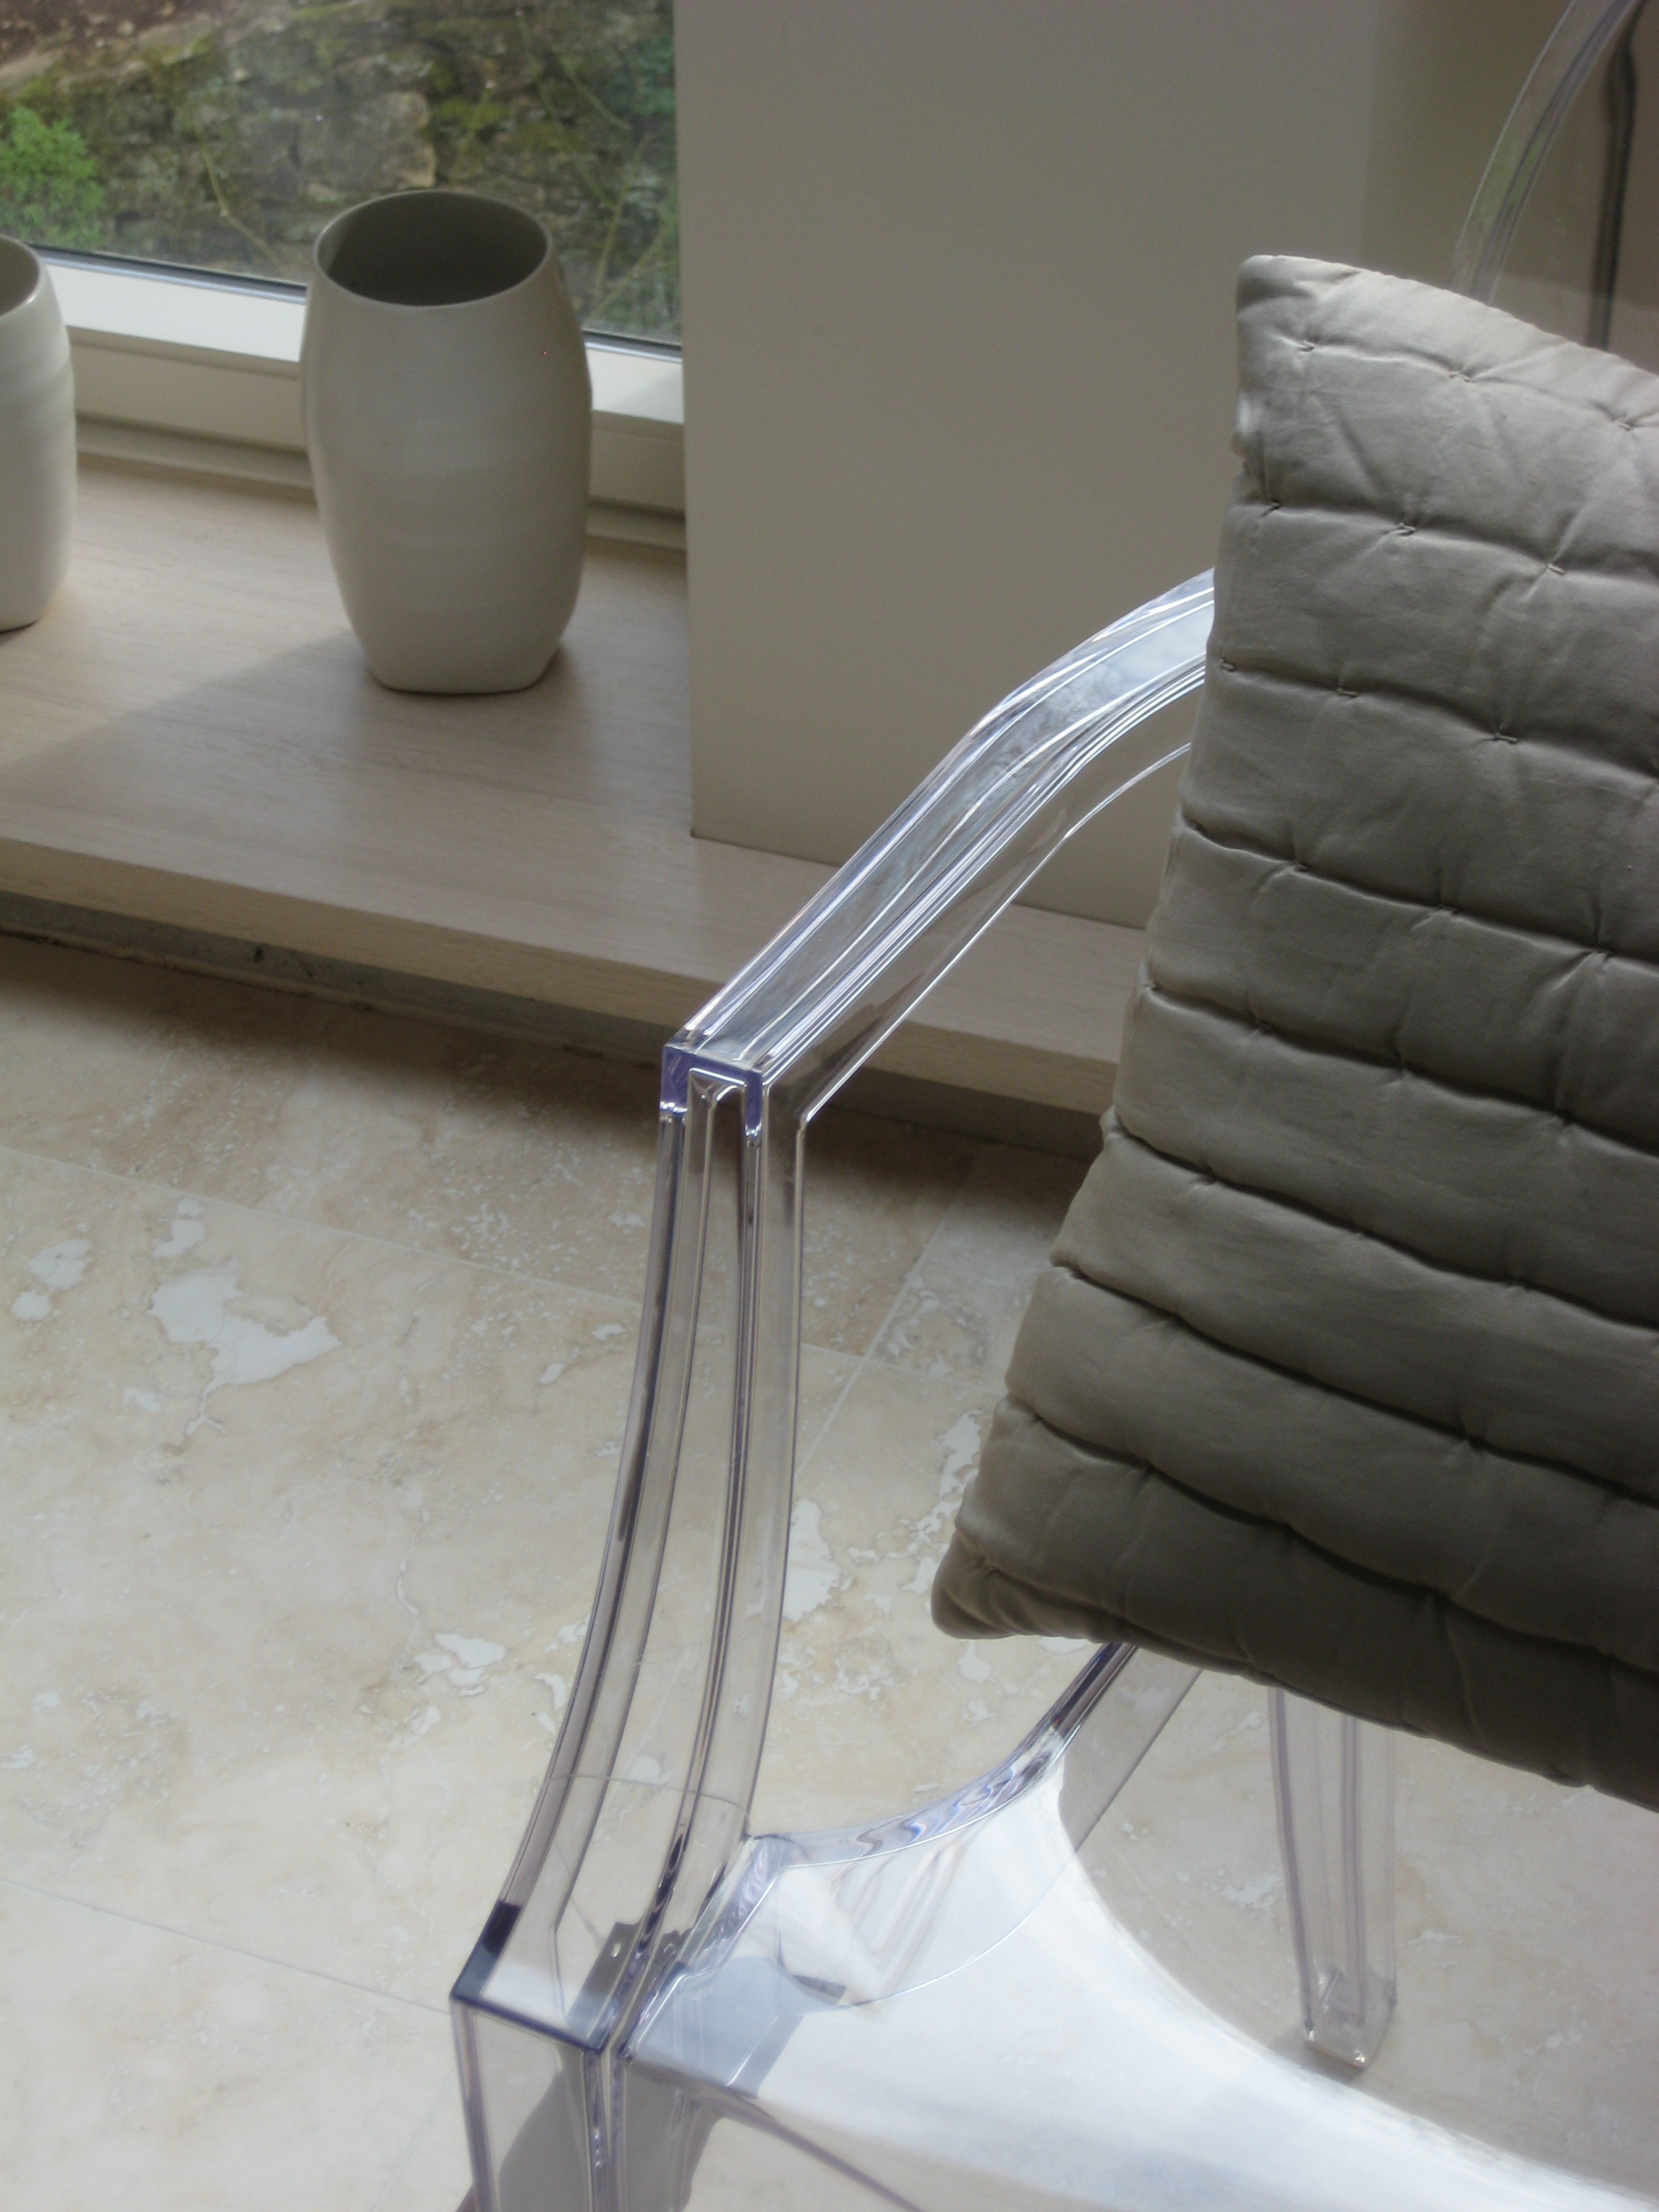 Detail of modern perspex chair with cushion and vase.